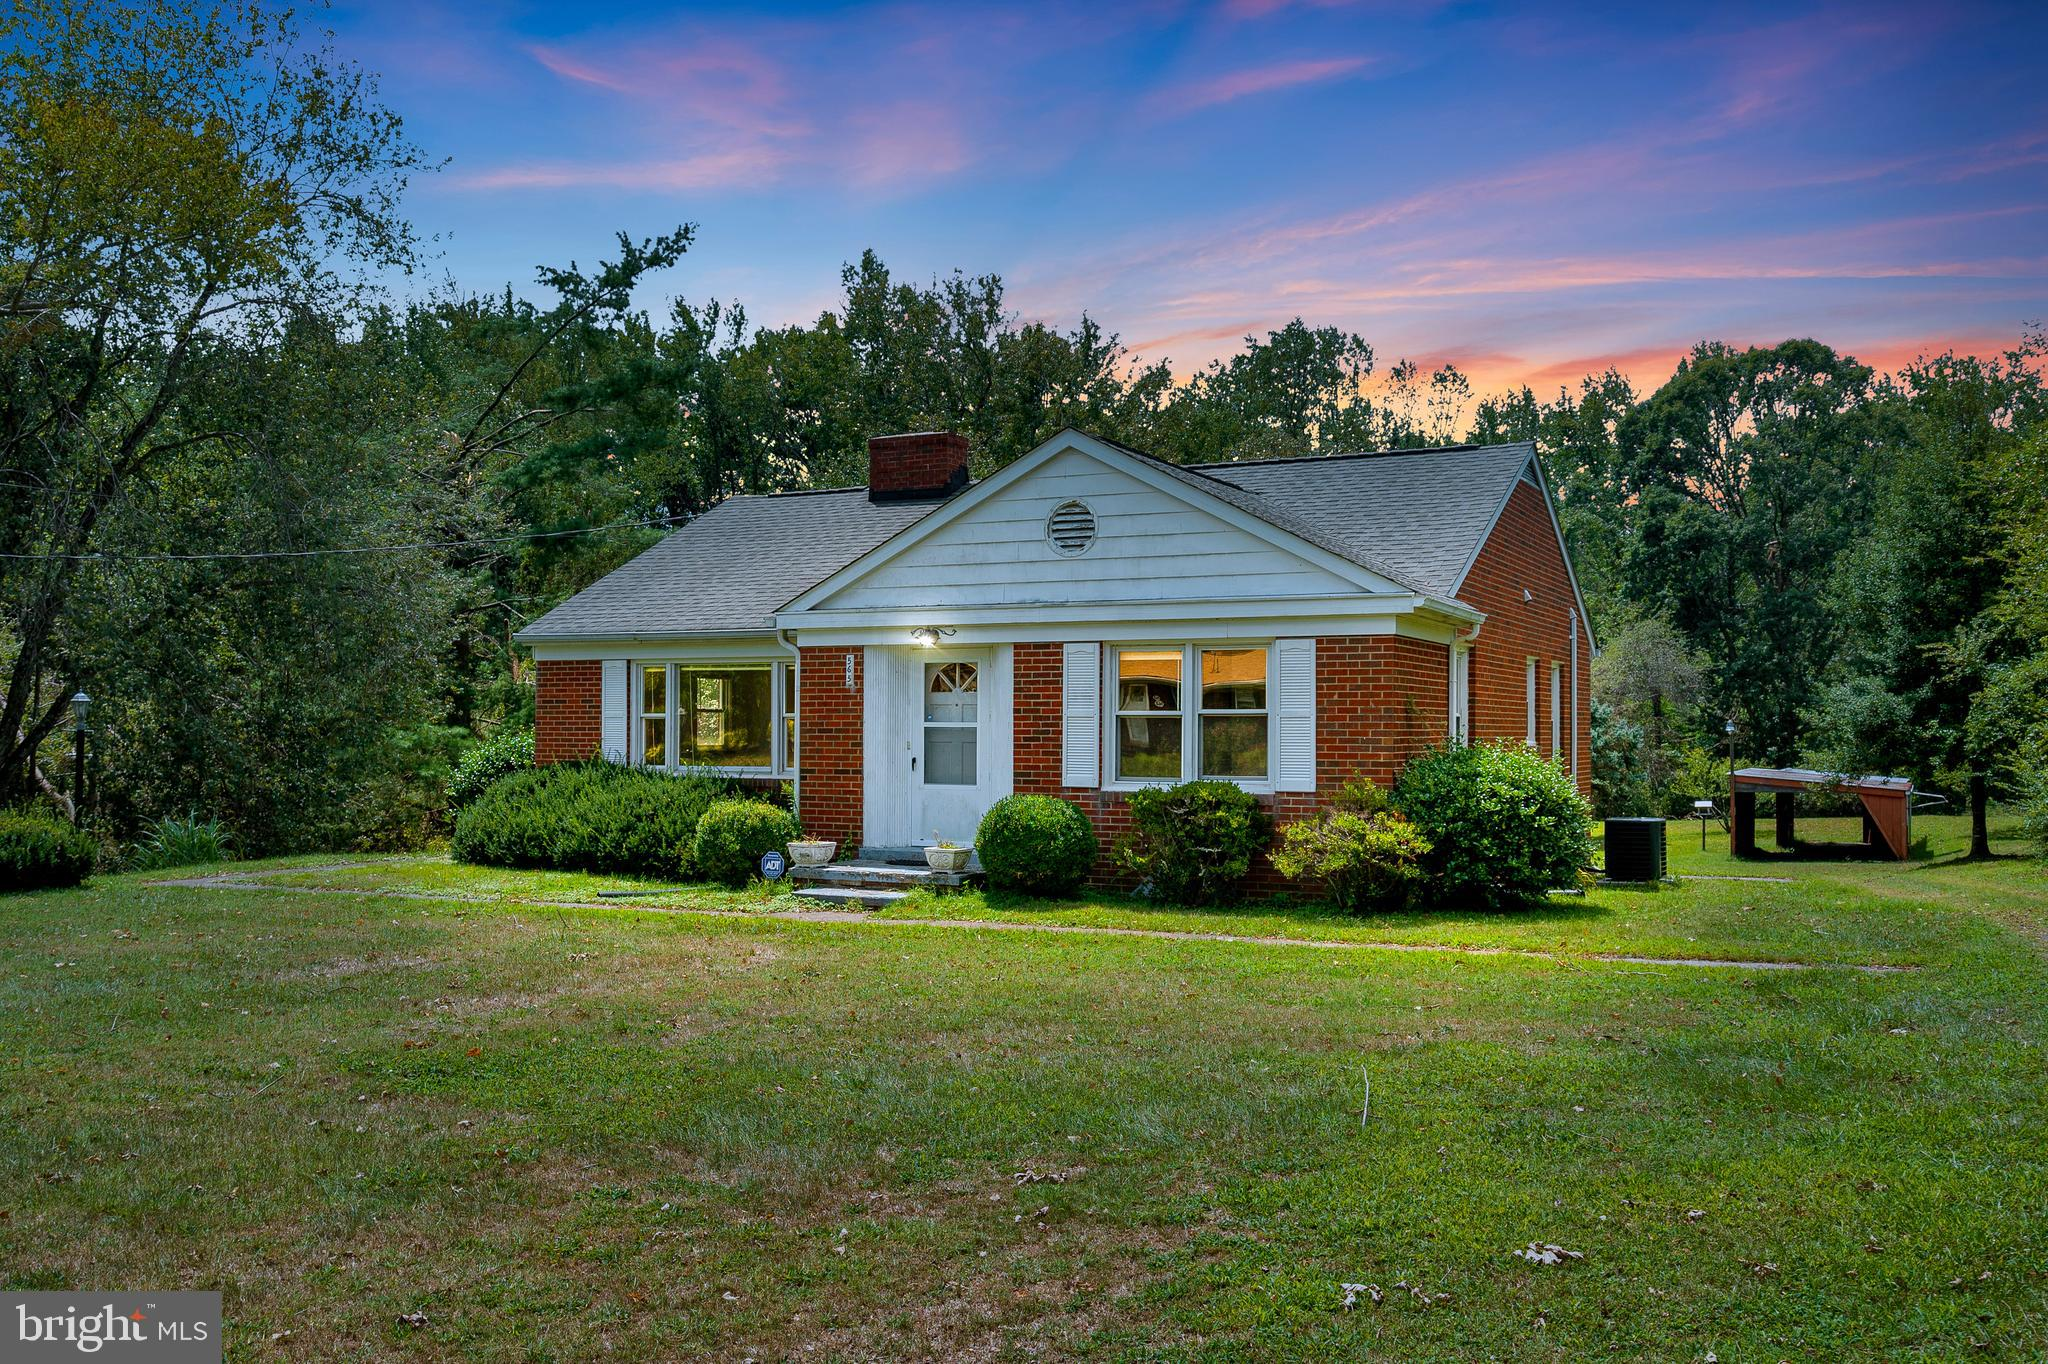 Back on the market! No fault to seller! Hurry to see this charming, all-brick rambler on a large South Stafford lot. Original owner took pride in this lovely home. The living room features a  sunny, picture window and a wood-burning fireplace.  The dining area leads to a three-season room. The three bedrooms feature original hardwood floors. The large, unfinished basement with a second fireplace and outside access to the carport awaits your plans.